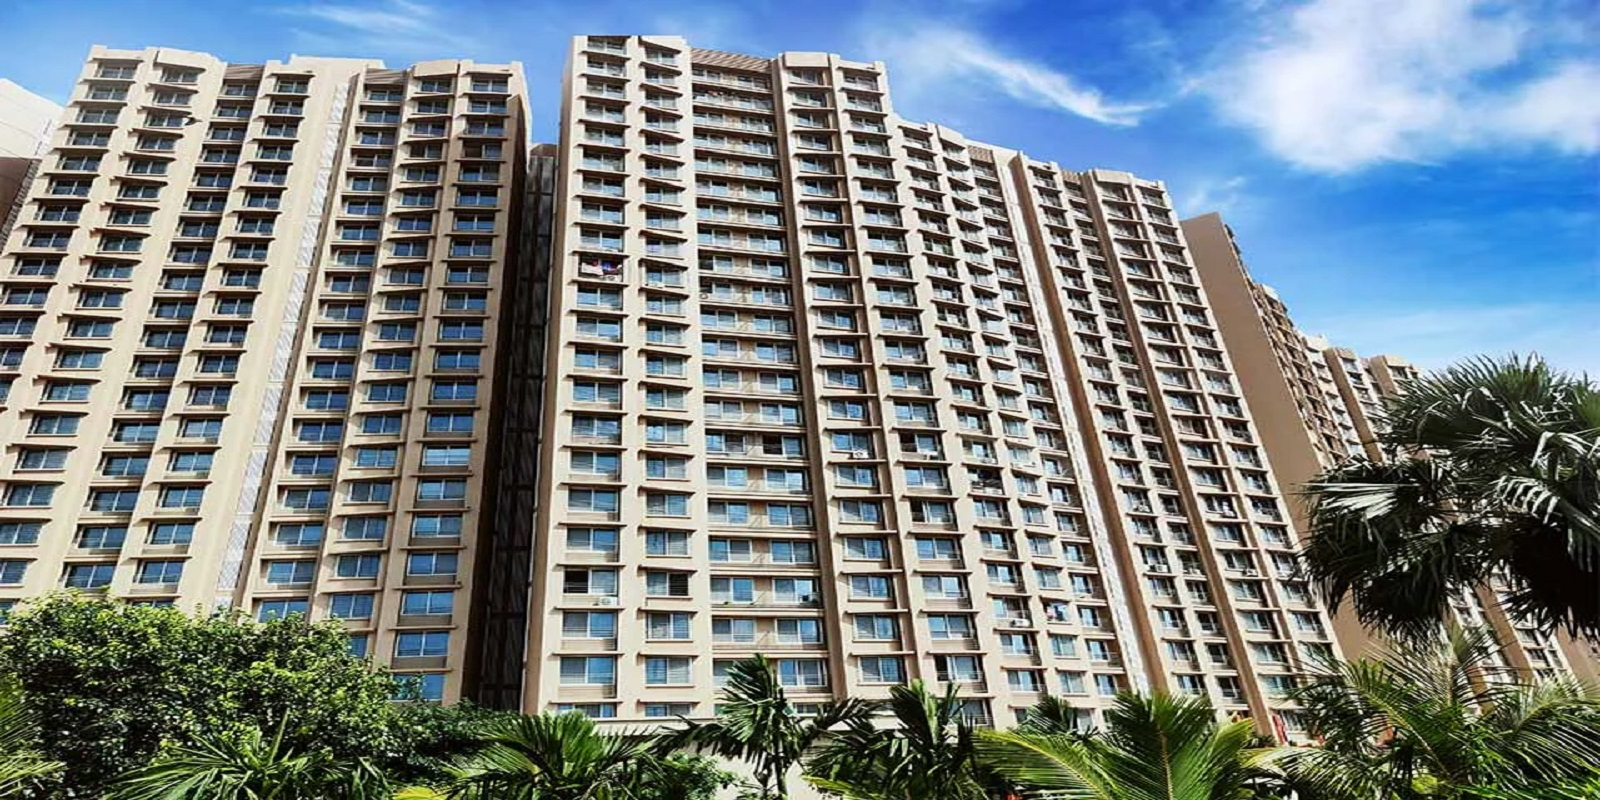 gurukrupa marina enclave wings m n phase ii project project large image1